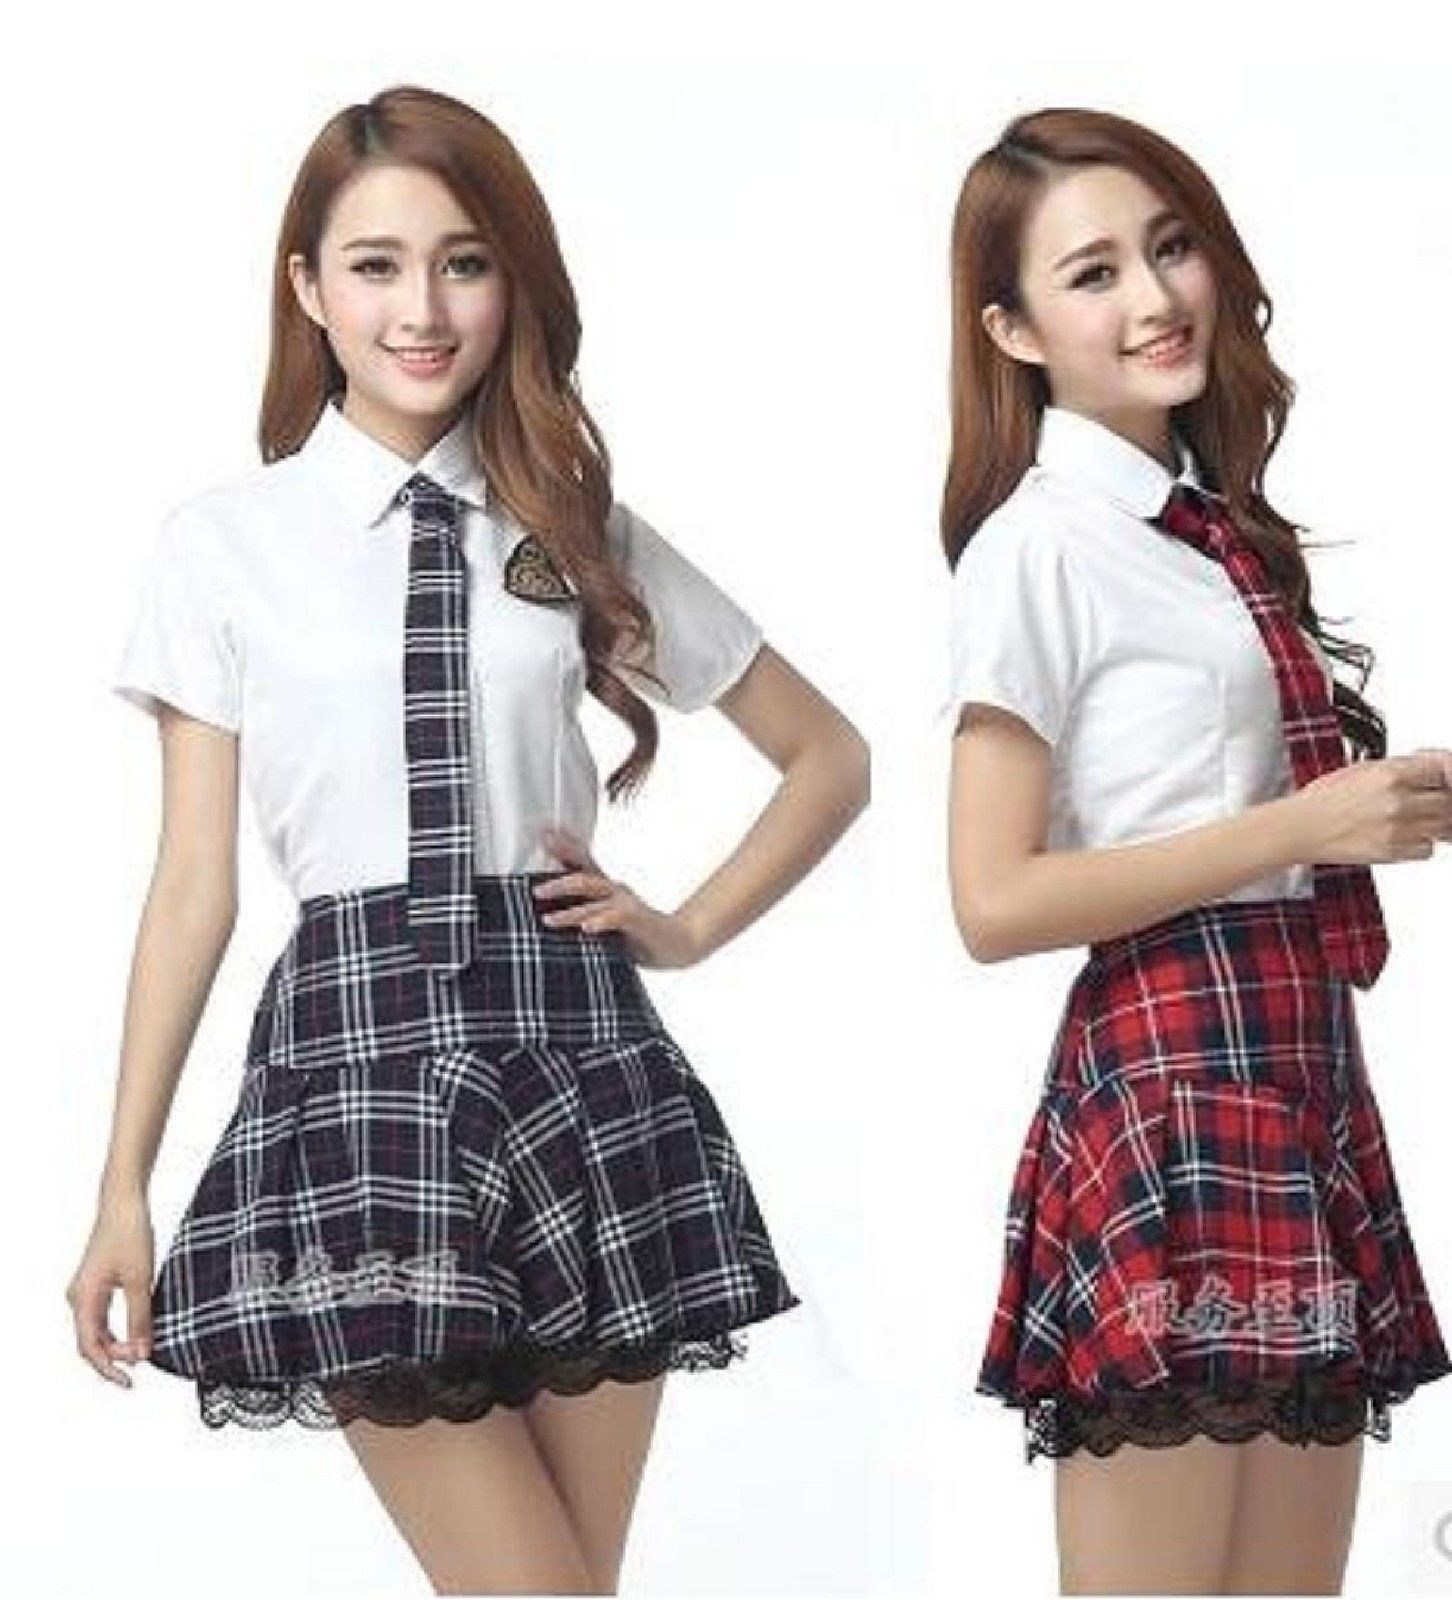 de3d914f52 Japanese Korean High School Girls Uniform Shirt Skirt Tie Suit Cosplay  Costume